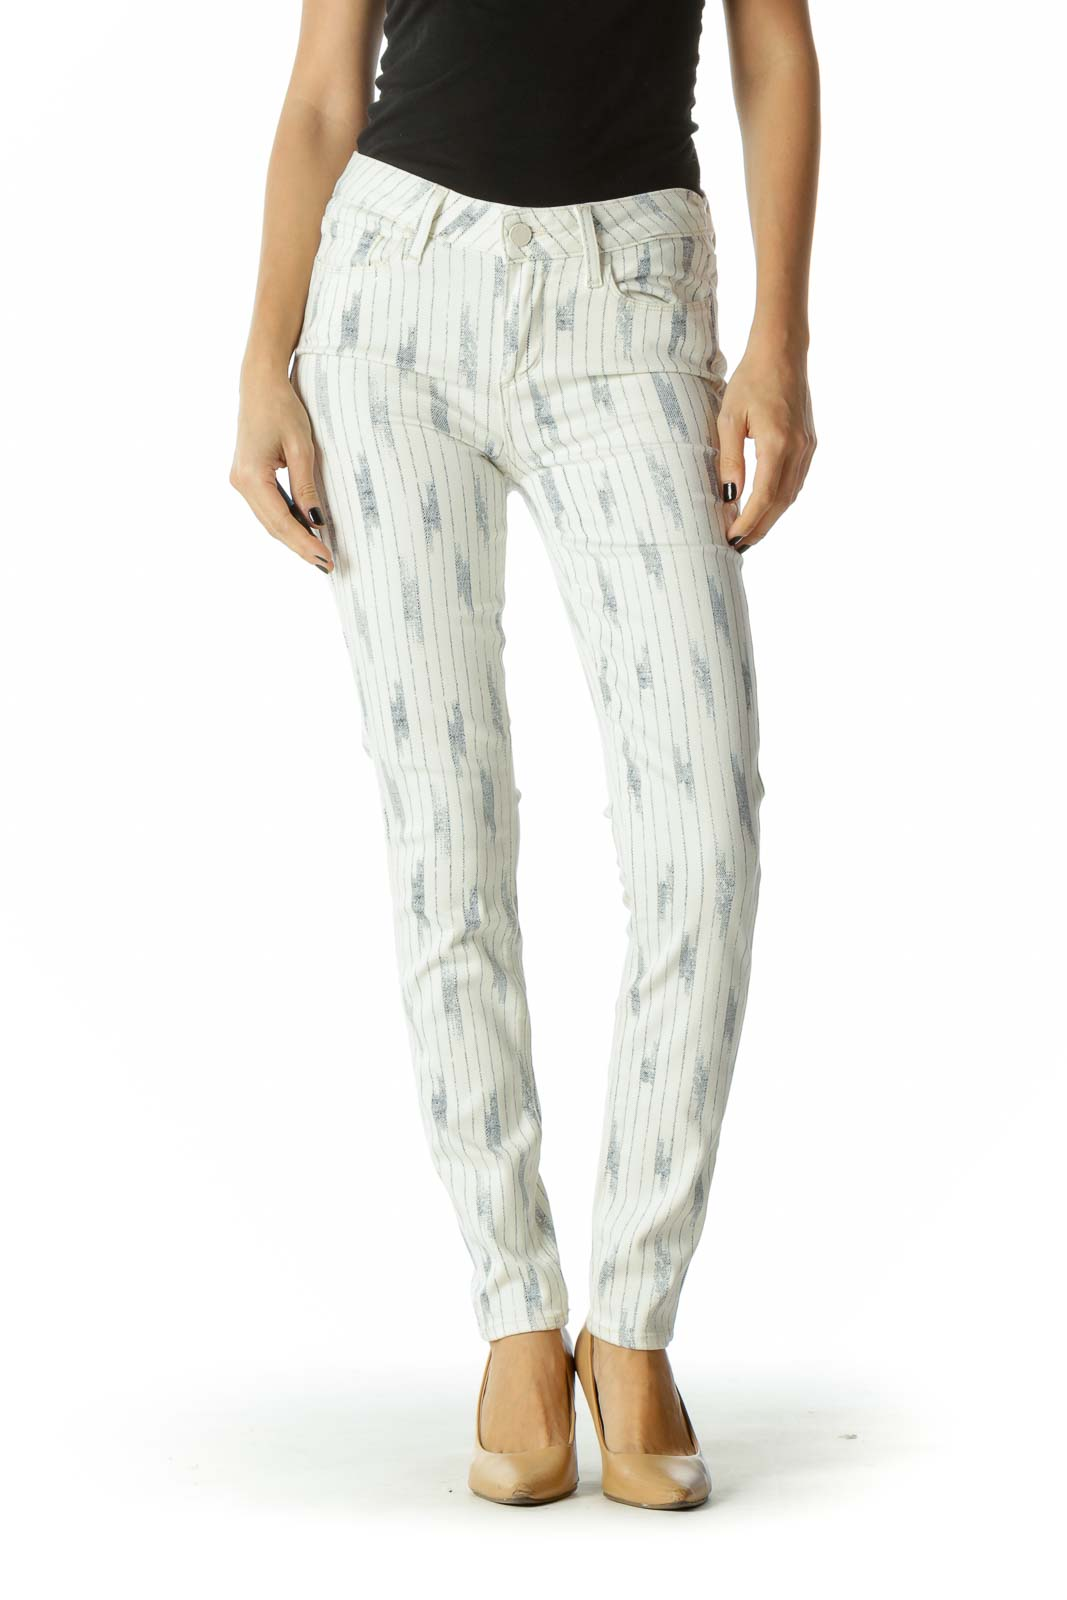 White & Navy Pocketed Patterned Skinny Pants